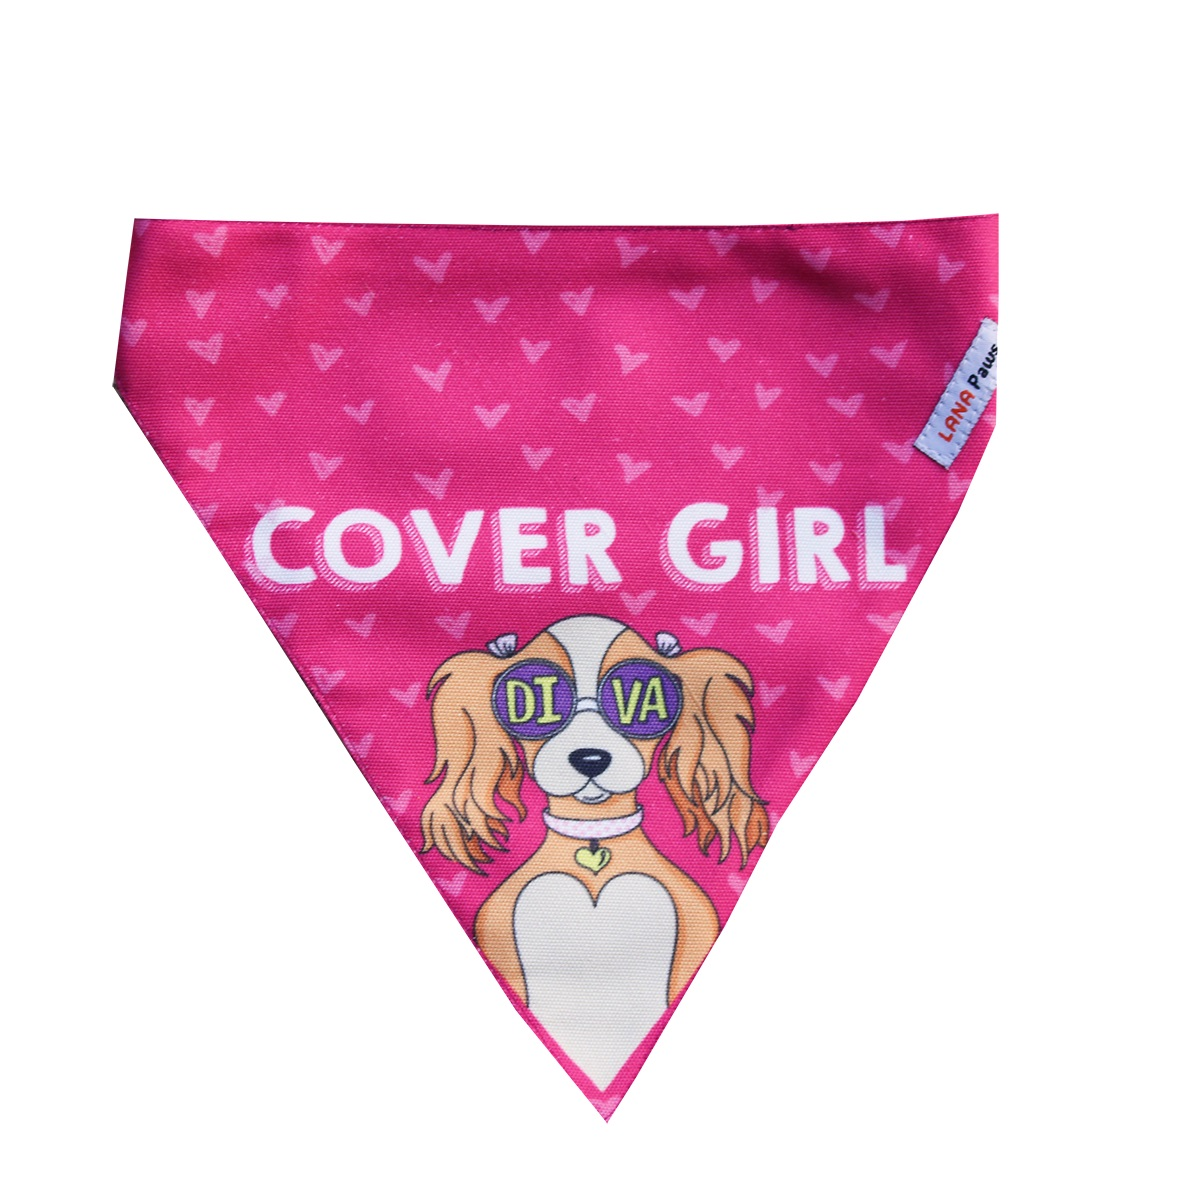 LANA Paws Cover Girl, Diva Adjustable Bandana -Small & Medium